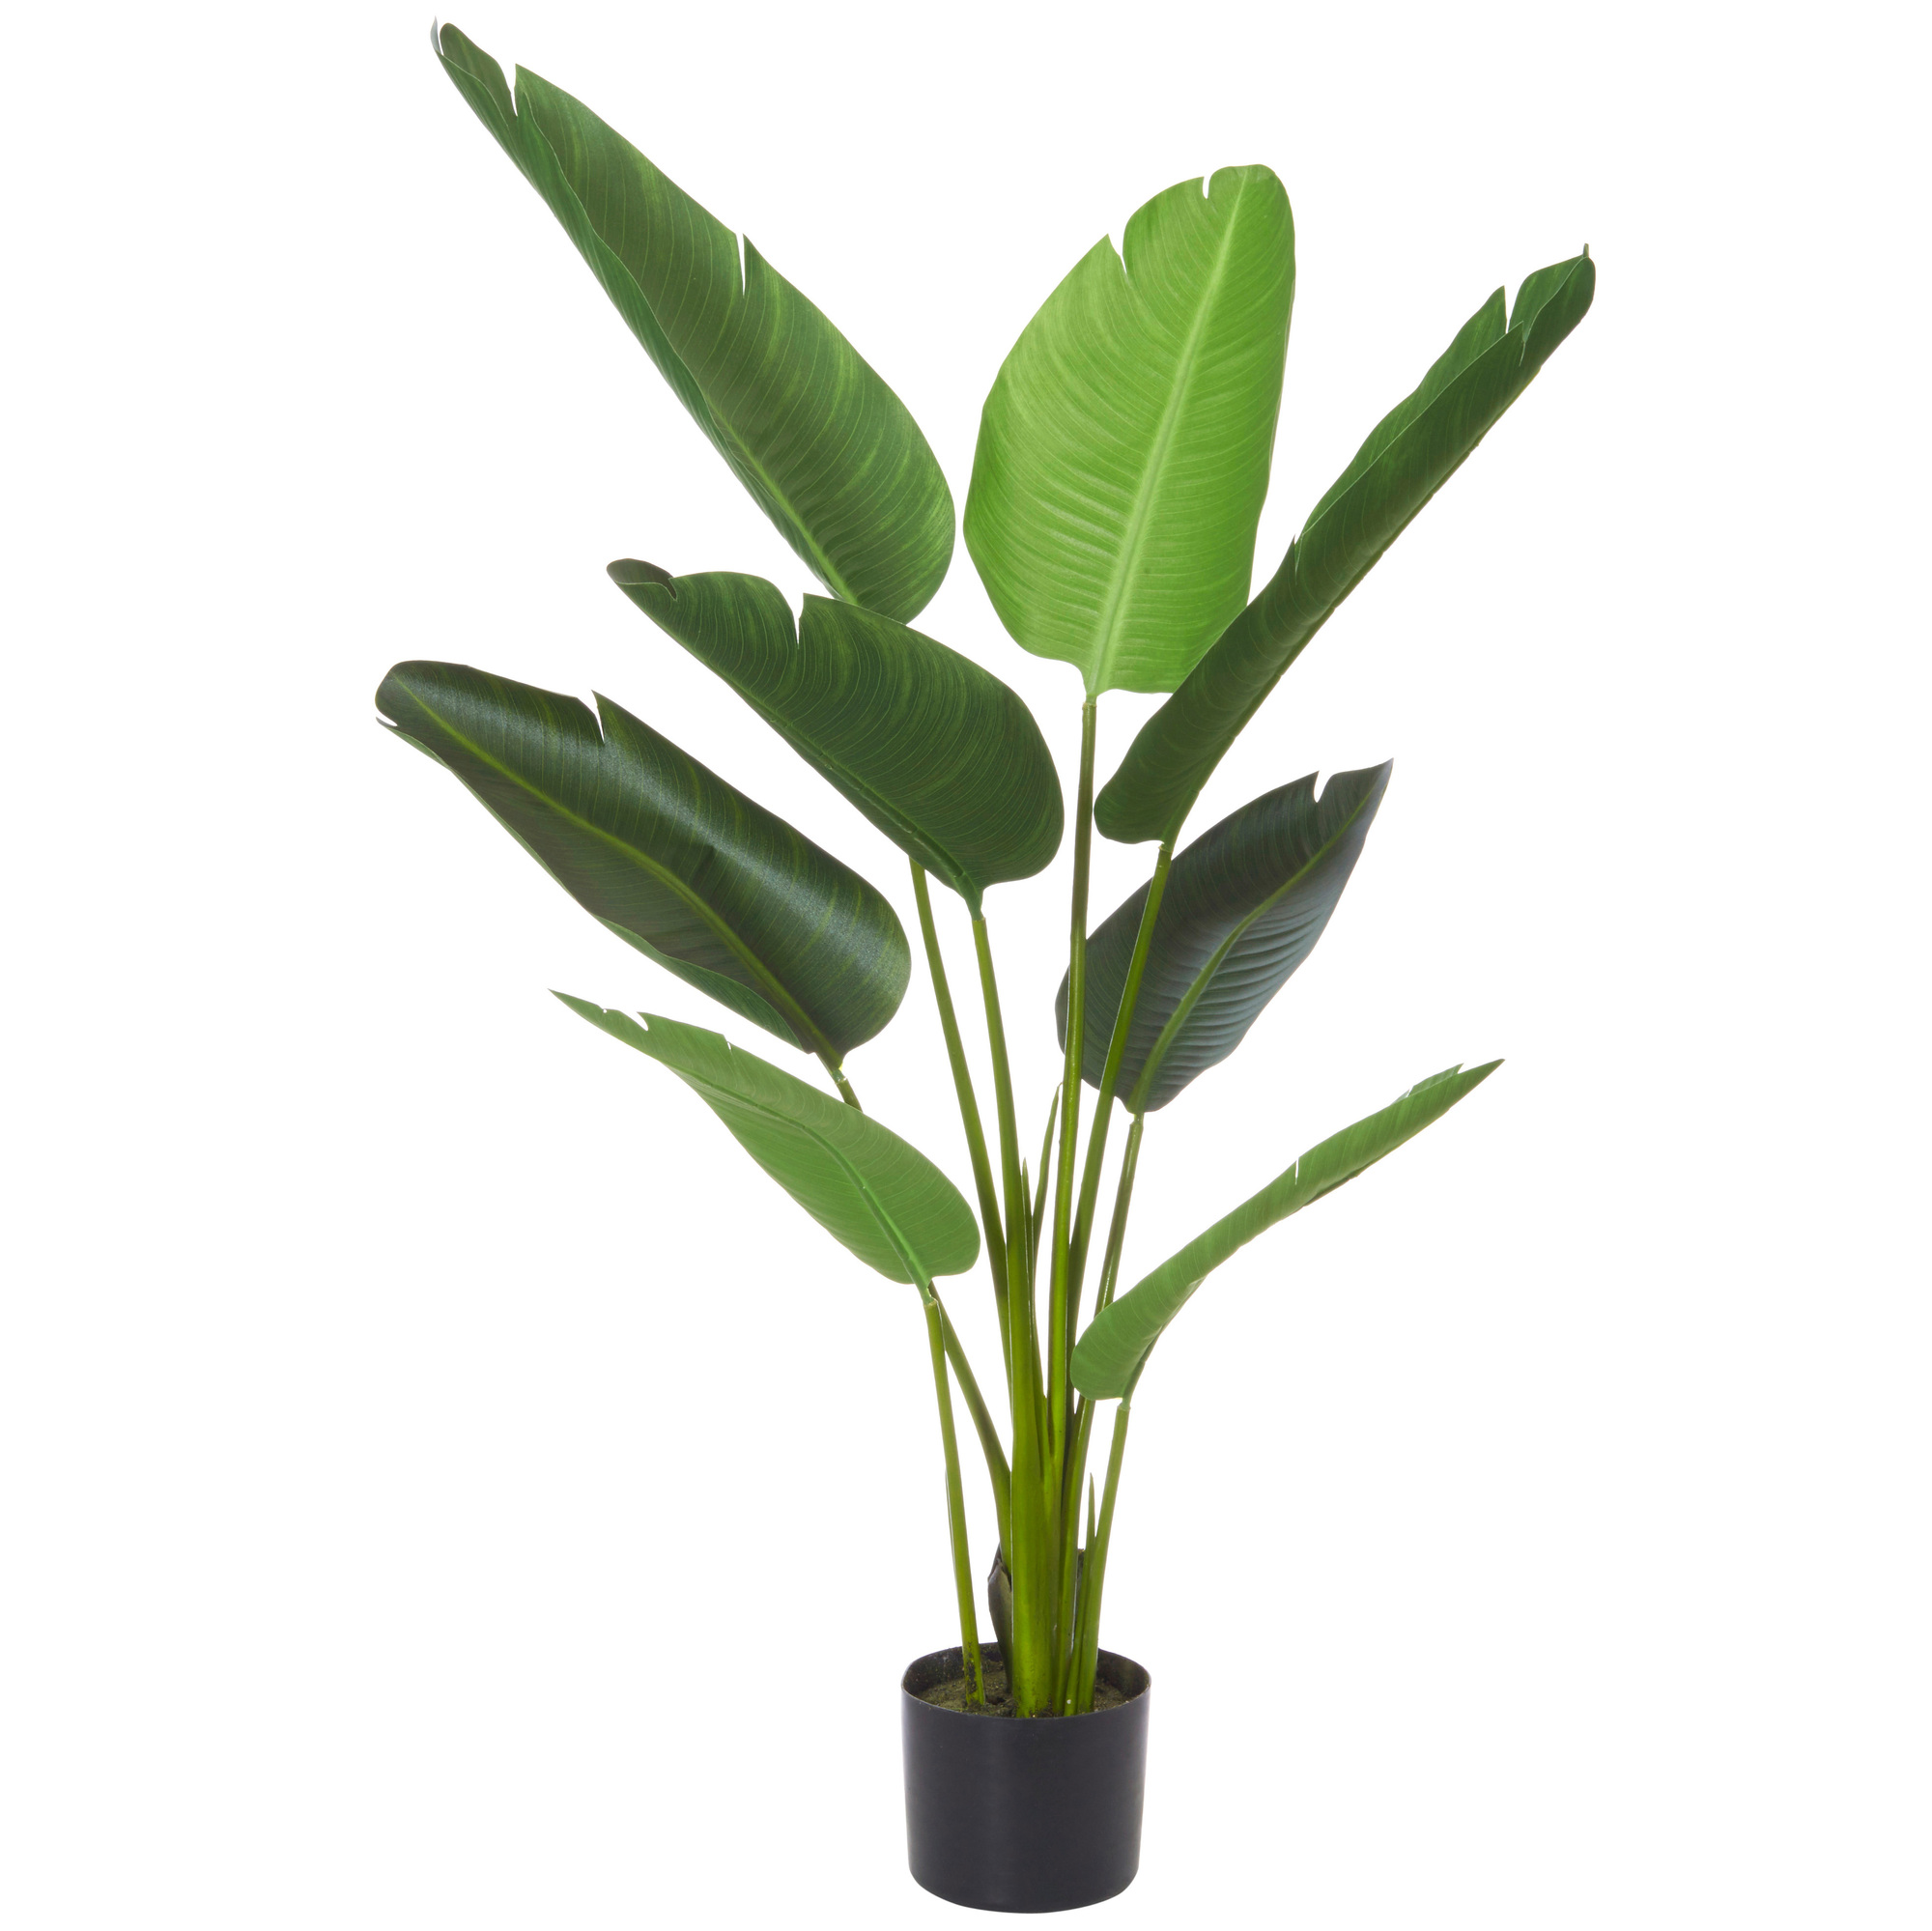 Artificial Potted Water Bamboo Grass Plant Tree Display Ornament Faux 122cm